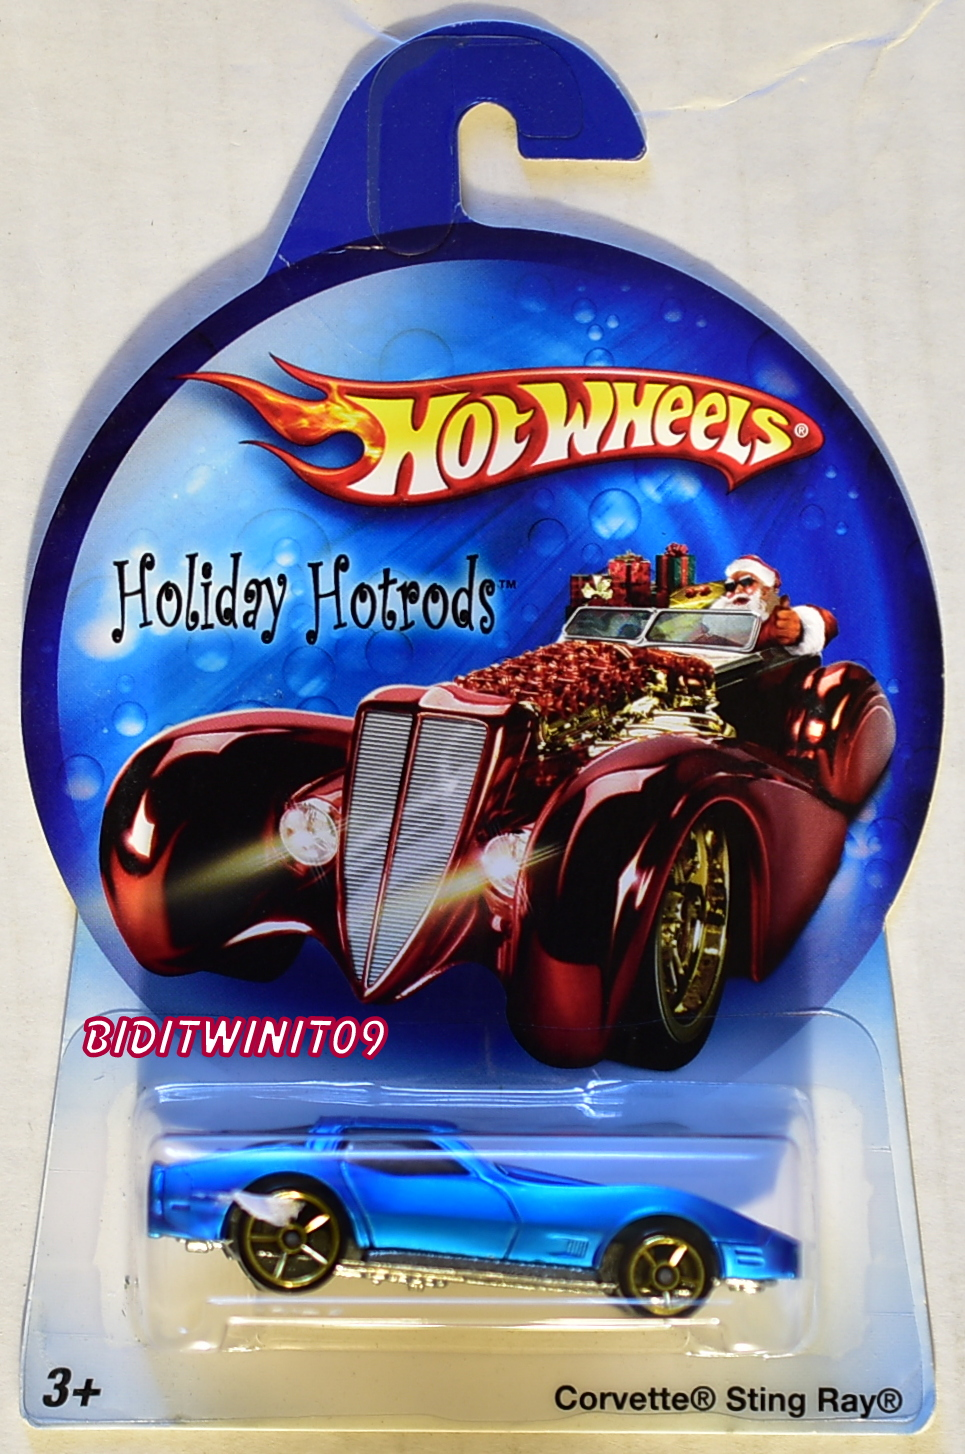 HOT WHEELS HOLIDAY HOTRODS CORVETTE STING RAY BLUE